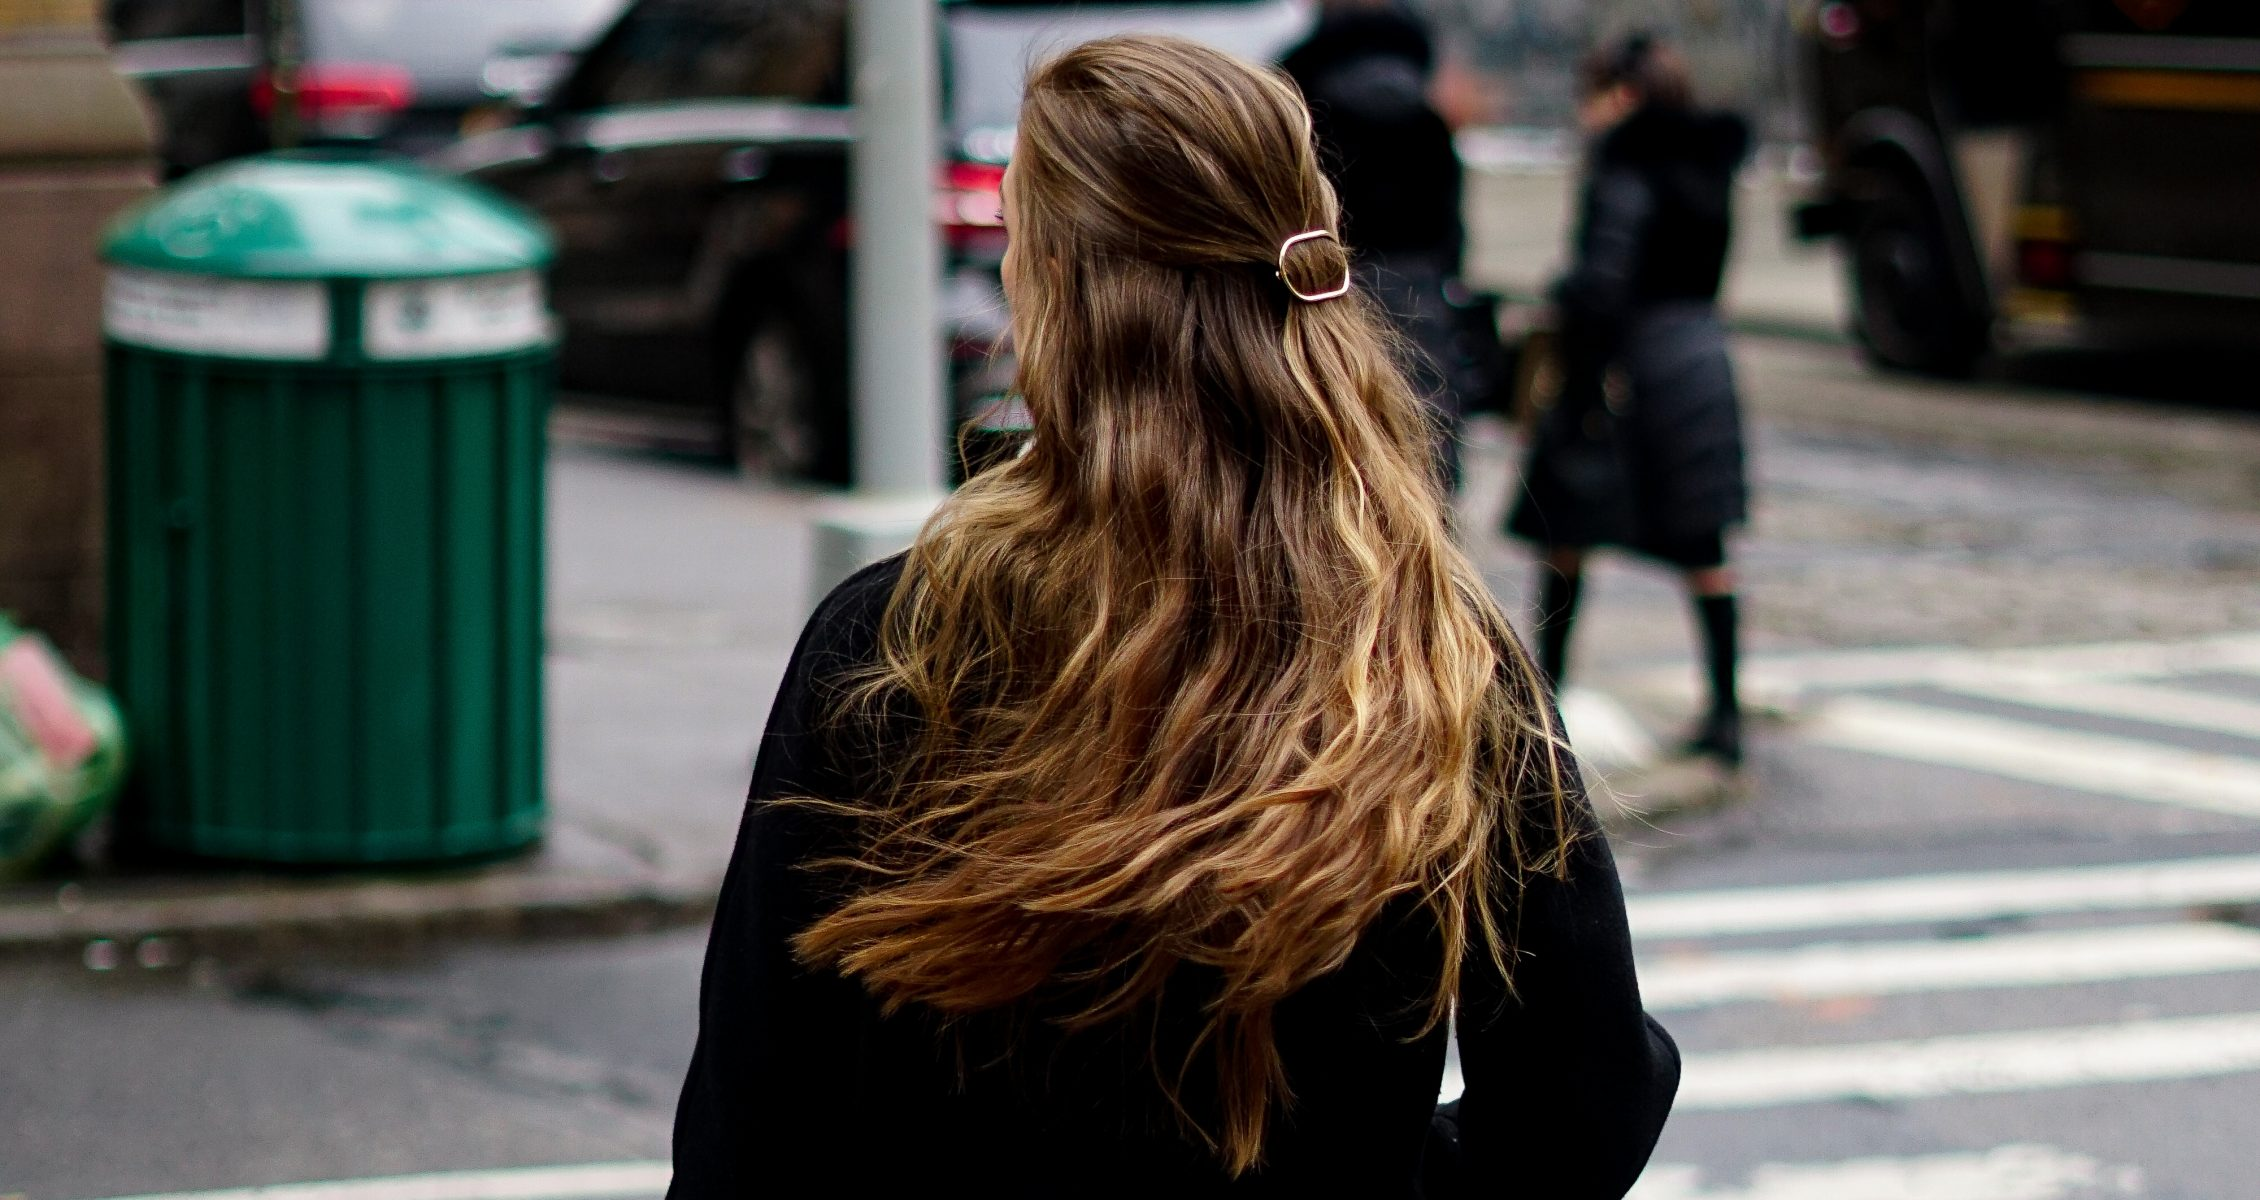 a woman with very long honey blonde hair stands in a busy NYC street wearing a black coat